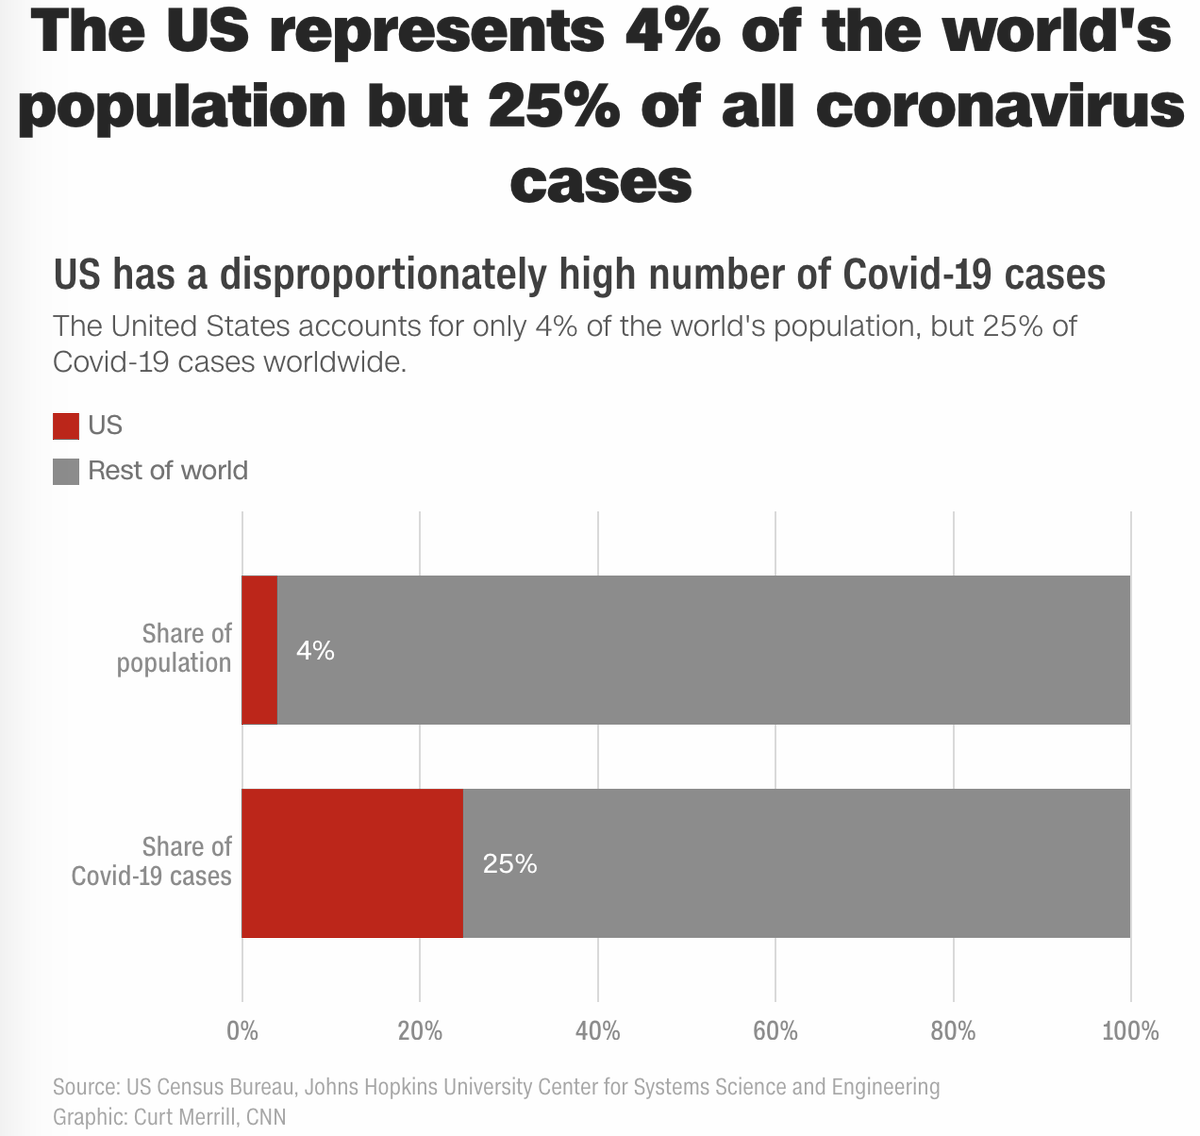 The US represents 4% of the world's population, but 25% of all coronavirus cases.  More people are infected with and die from coronavirus in the US than anywhere else in the world: https://t.co/ab9lpwhKUp https://t.co/pL0Qdp1fOH